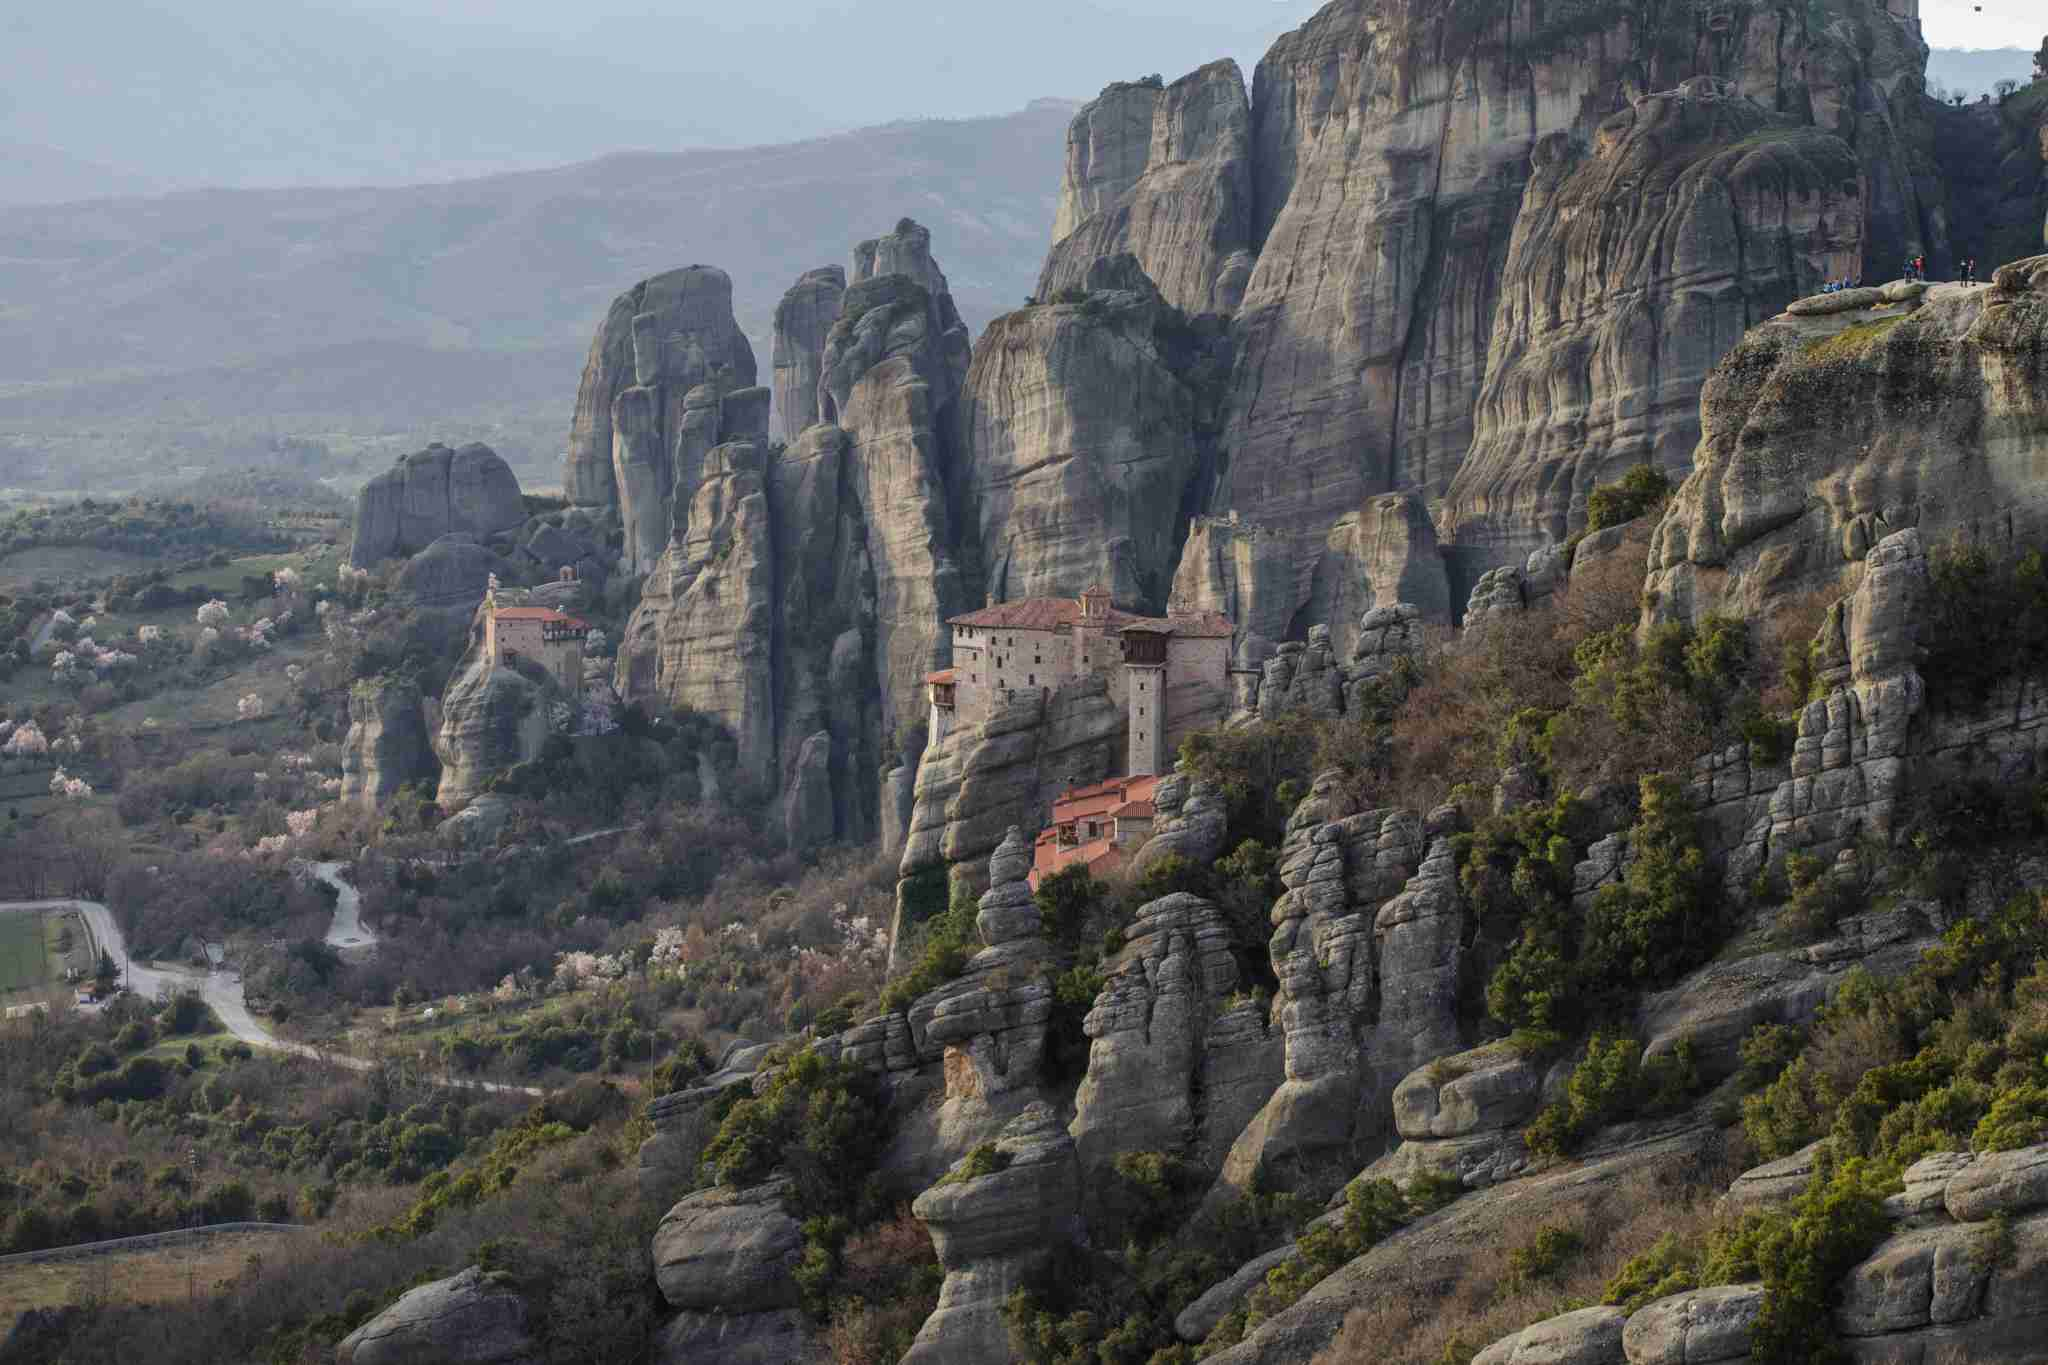 General view of Meteora Monasteries In Greece on 8 March 2019. Meteora is a setting of overwhelming rock formations located in central Greece.It is a pilgrimage to a holy place for all Christians around the world. Meteora has become a preservation ark for the 2000-year-old Christian Orthodox creed. It is a big touristic place from all over the world during all the time of the year. (Photo by Achilleas Chiras/NurPhoto via Getty Images)